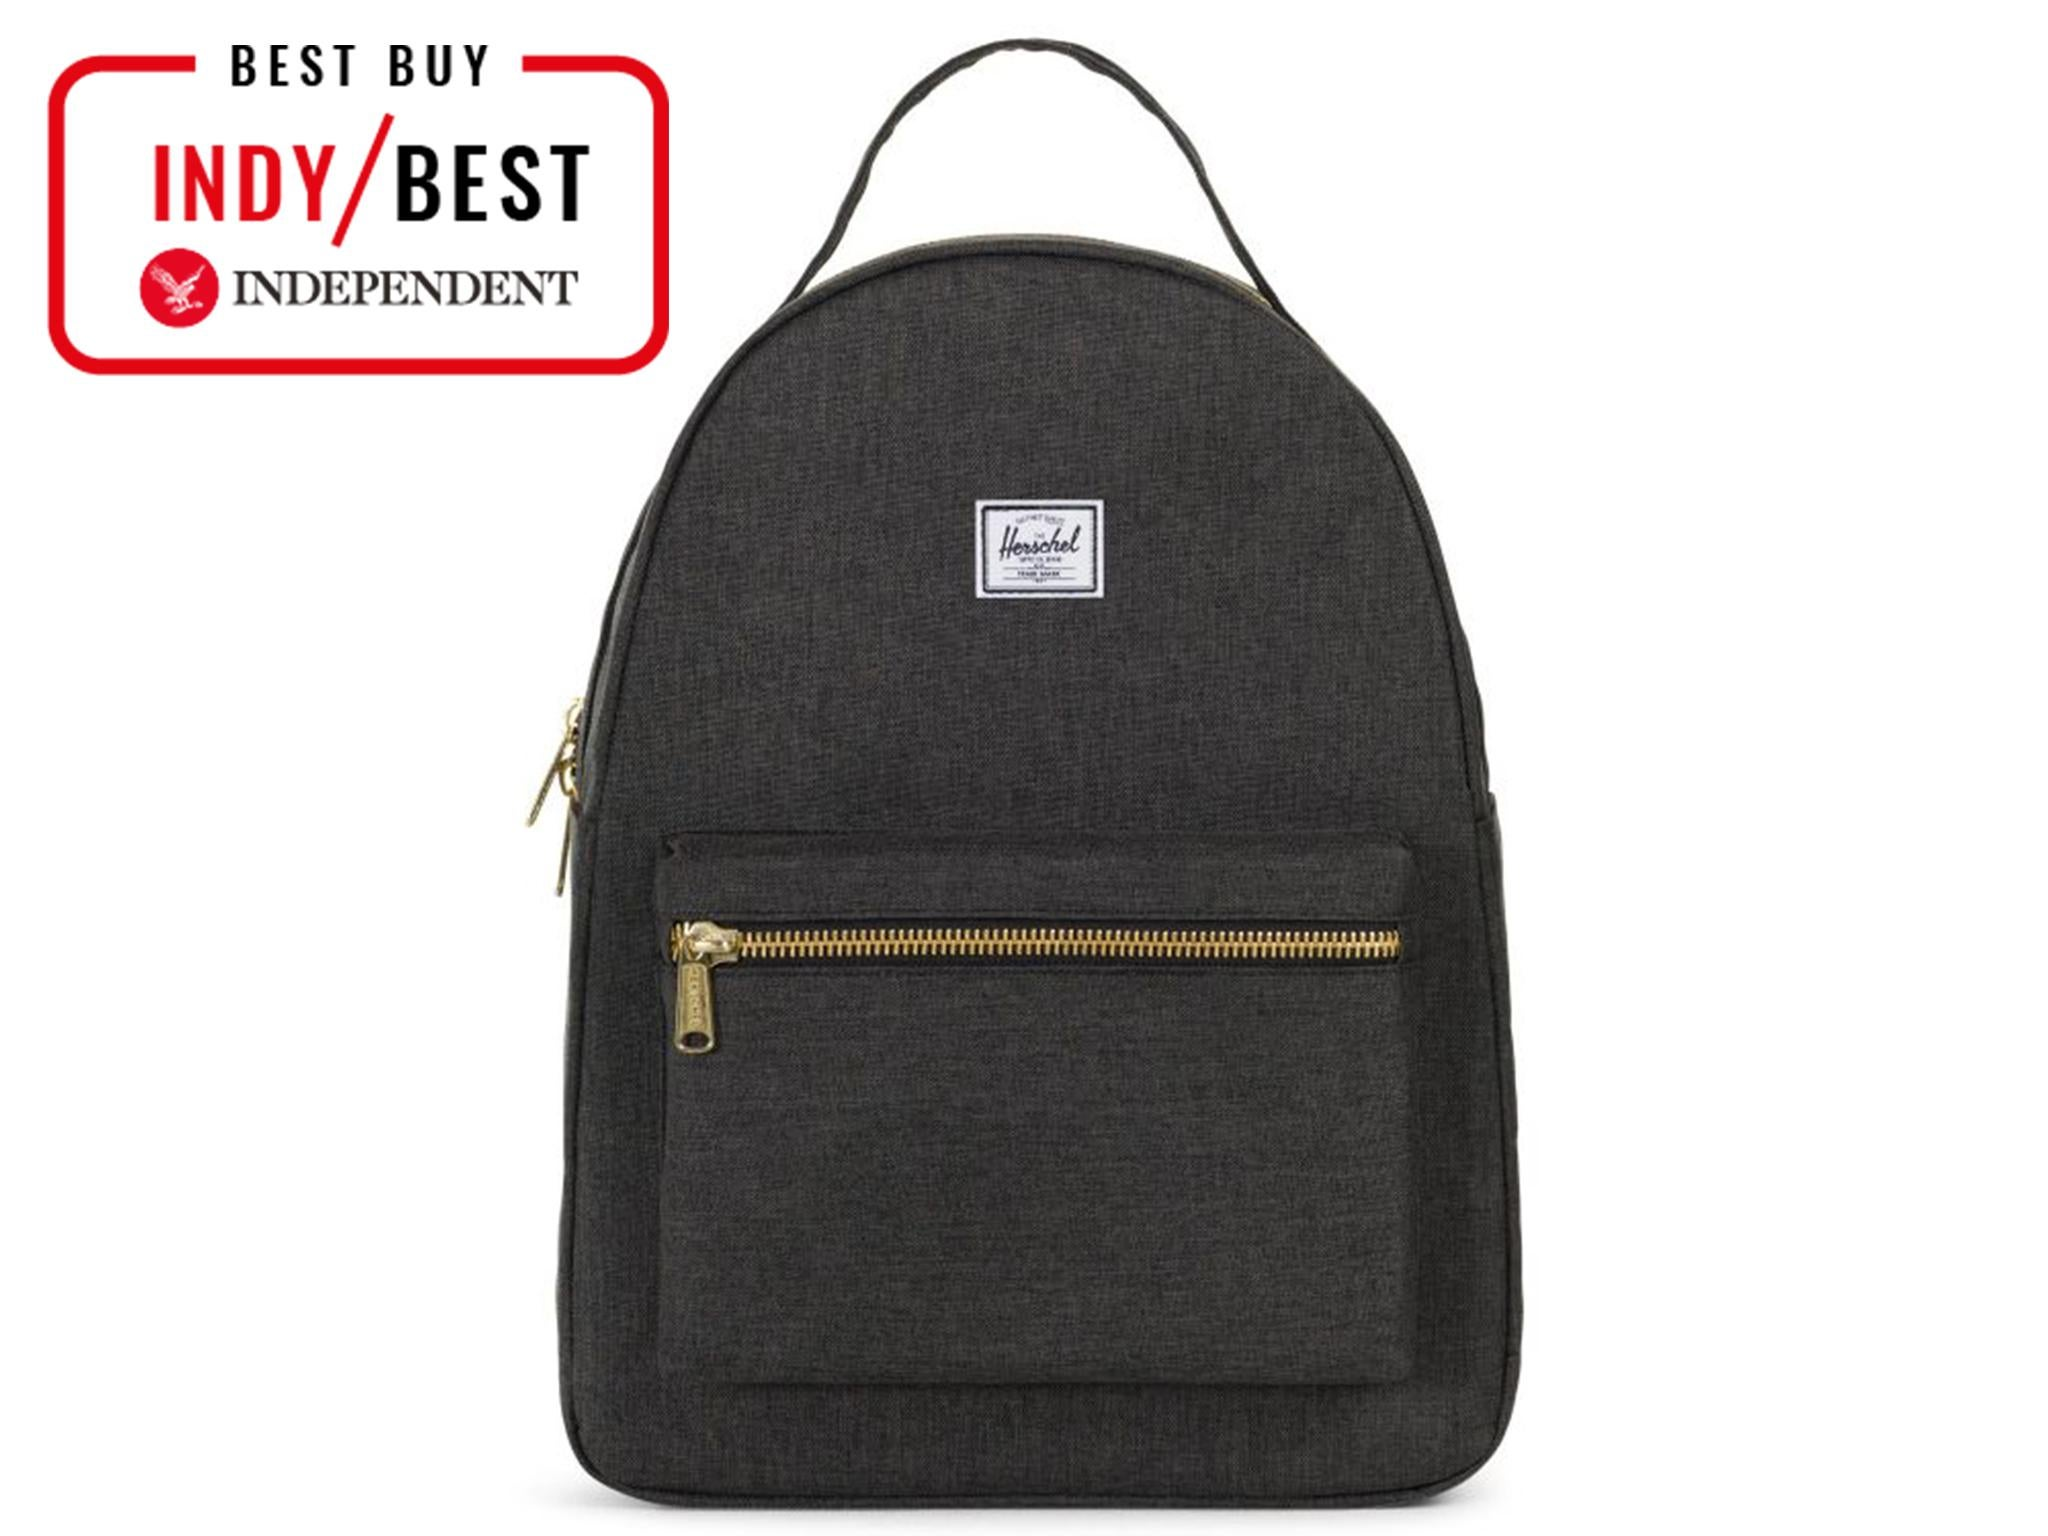 8 best backpacks for women  ca0d5d1642e78